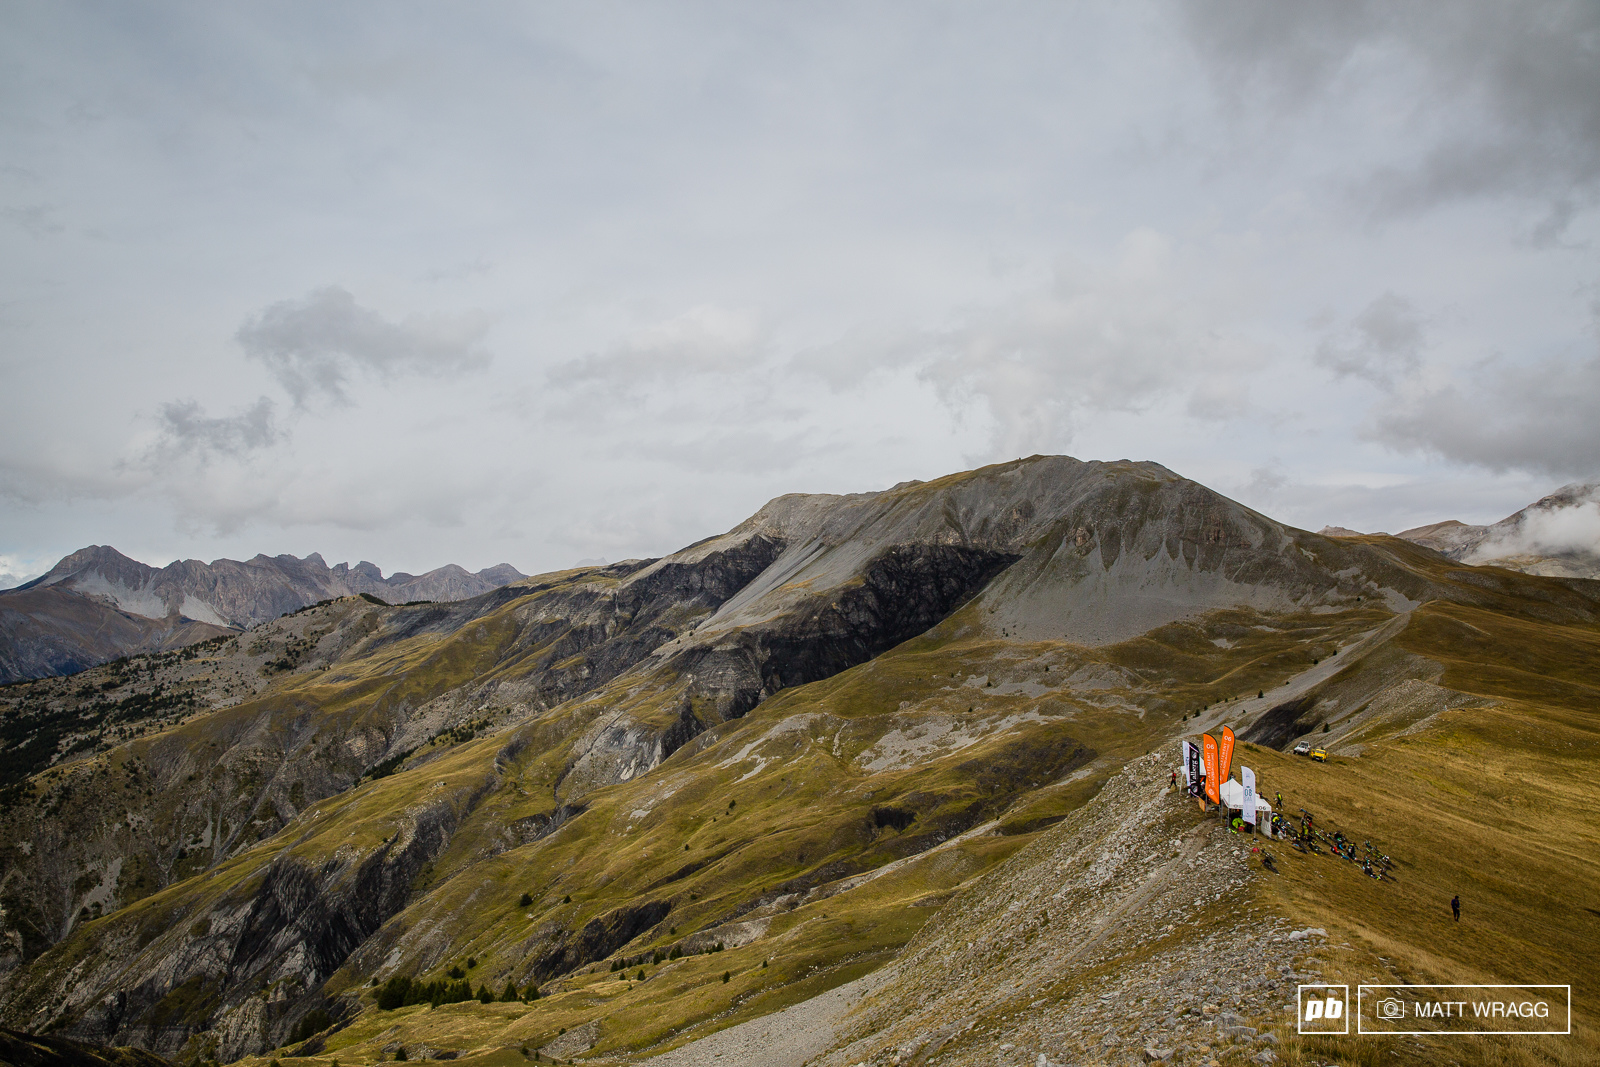 Stage three starts on the ridge at well over 2 000m up. This is about as out there as enduro racing gets.